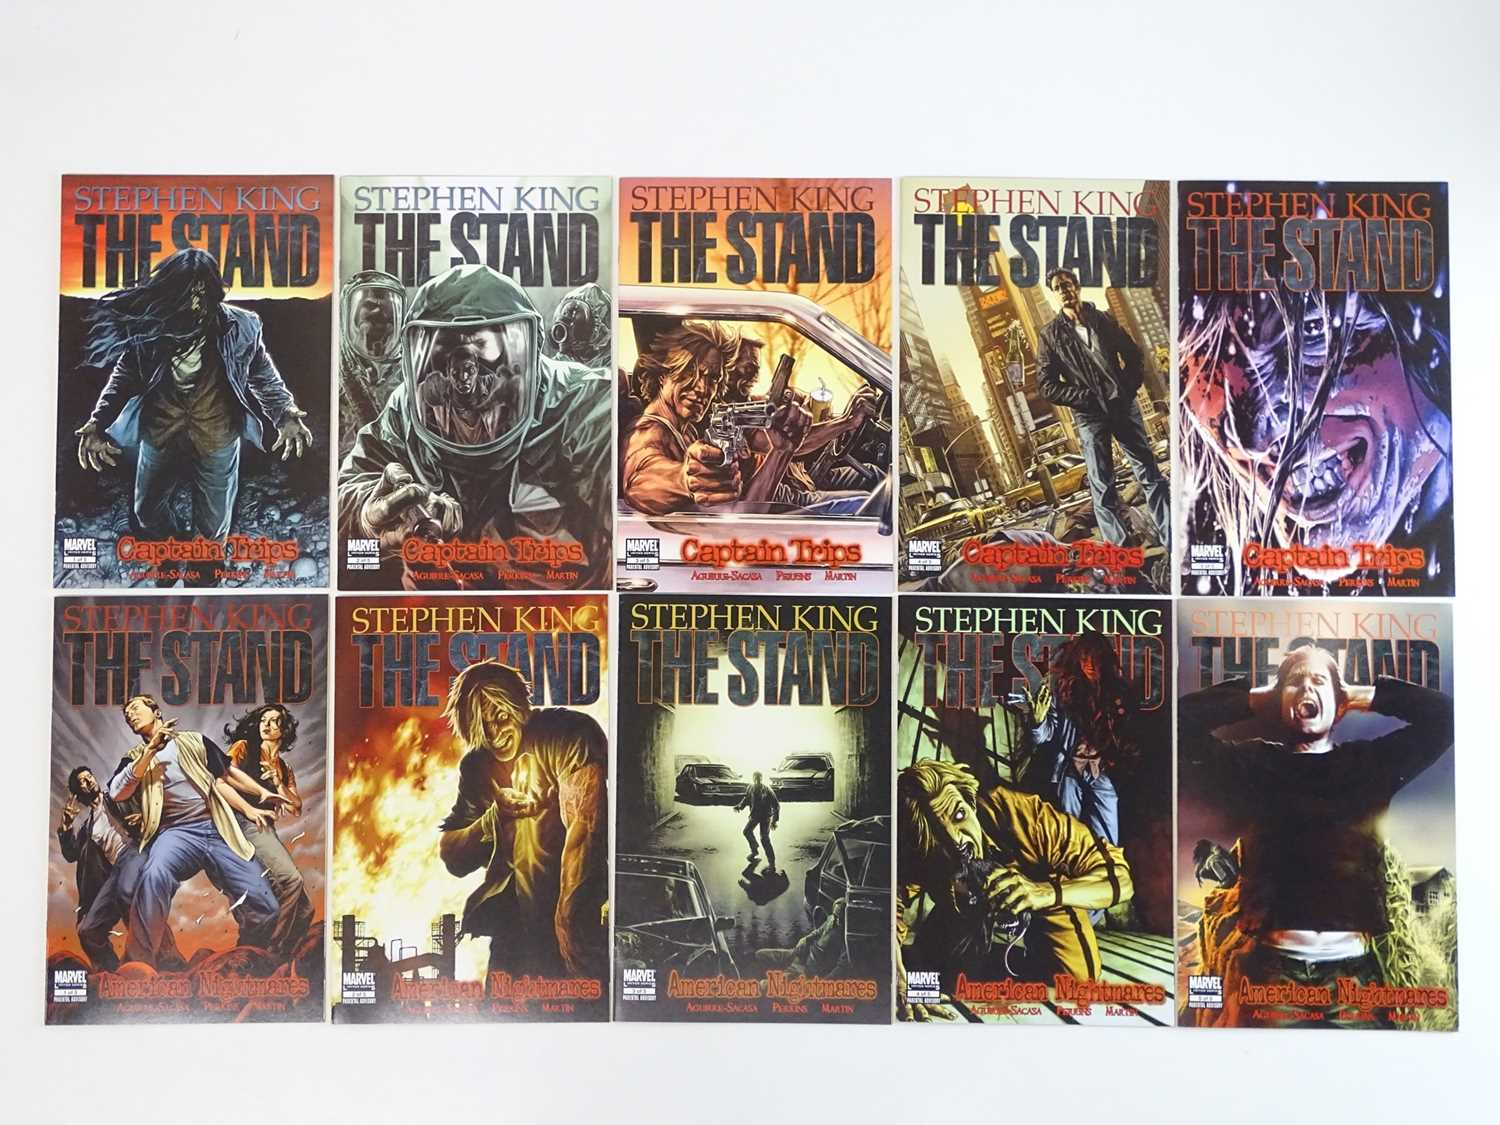 STEPHEN KING: THE STAND - CAPTAIN TRIPS & AMERICAN NIGHTMARES #1, 2, 3, 4, 5 - (10 in Lot) - (2008/